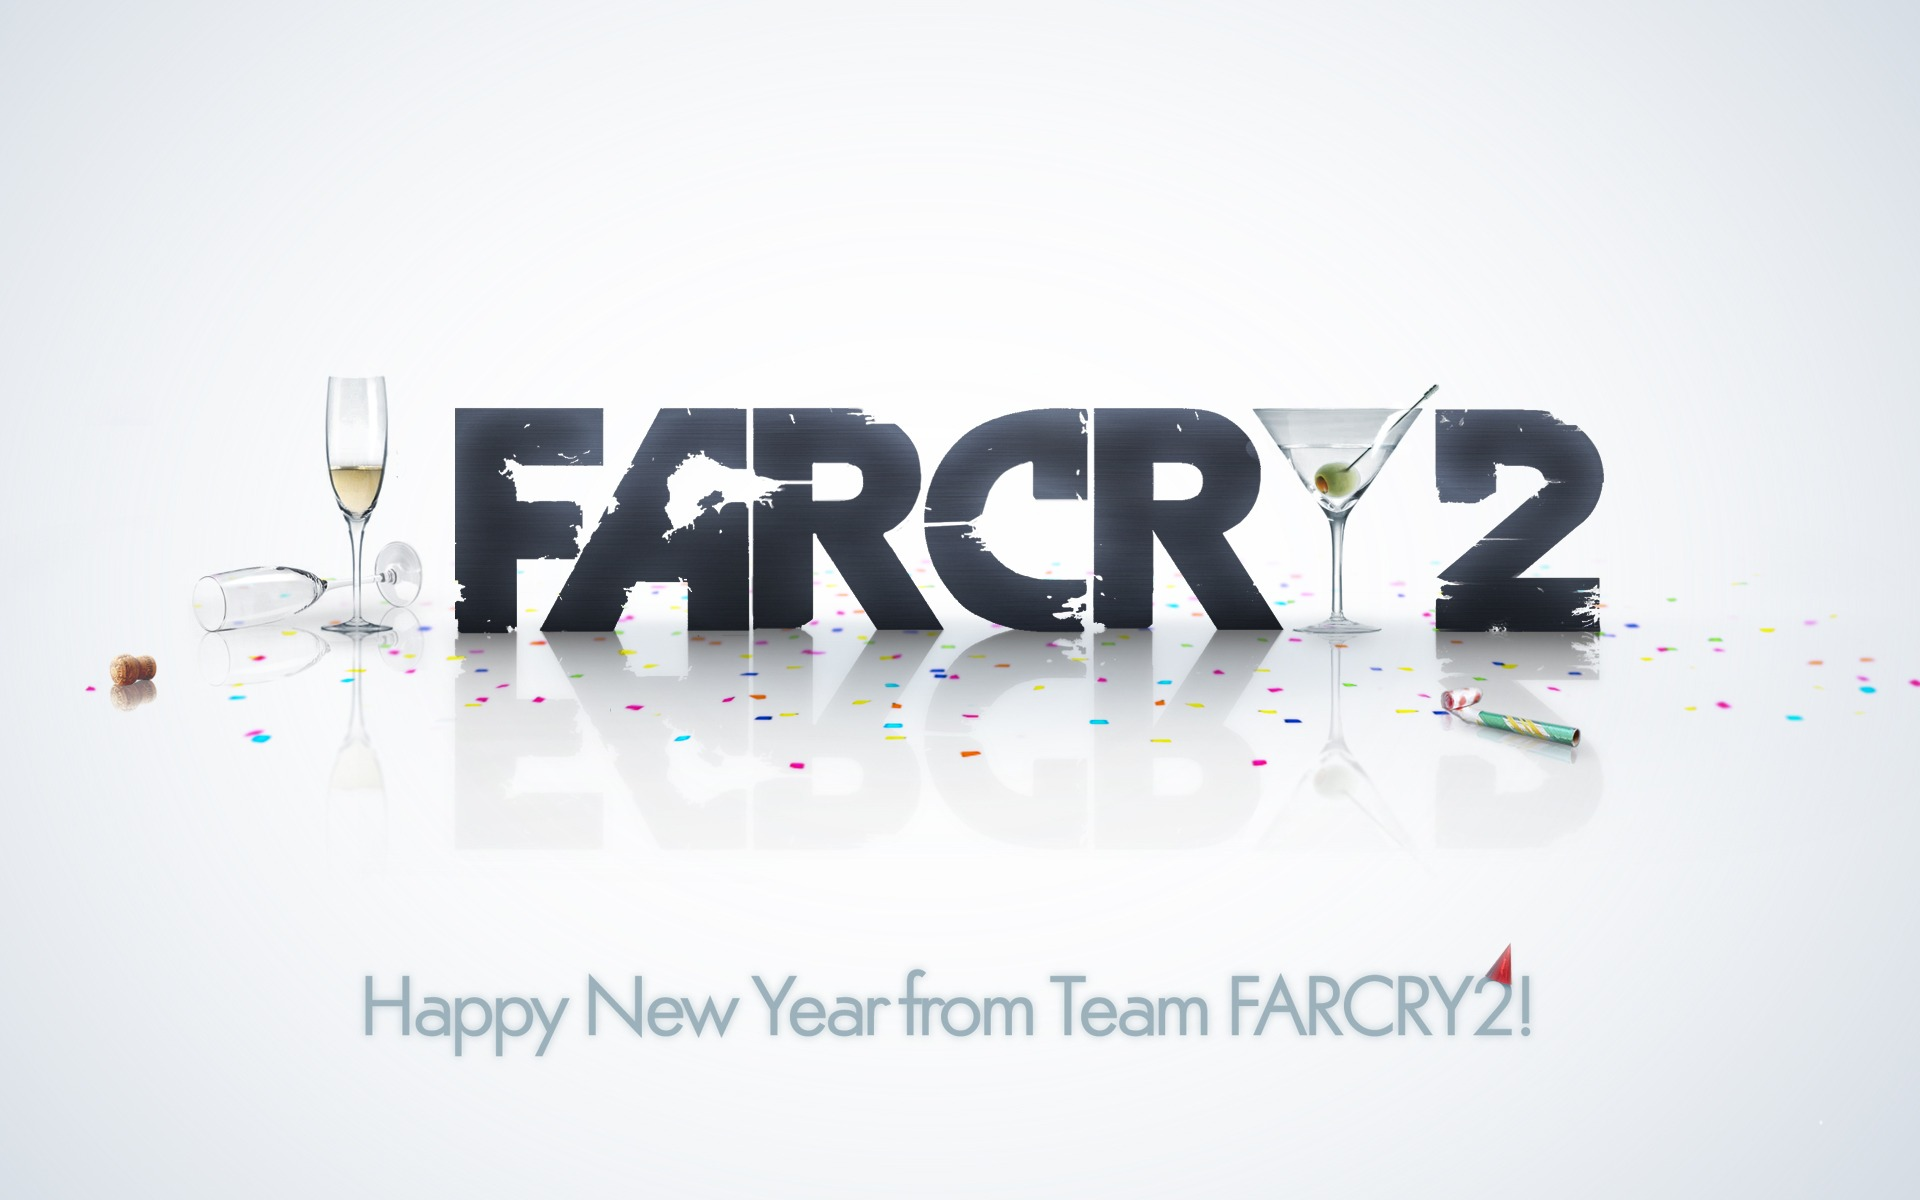 Farcry 2 New Year Wallpaper Far Cry 2 Games Wallpapers In Jpg Format For Free Download